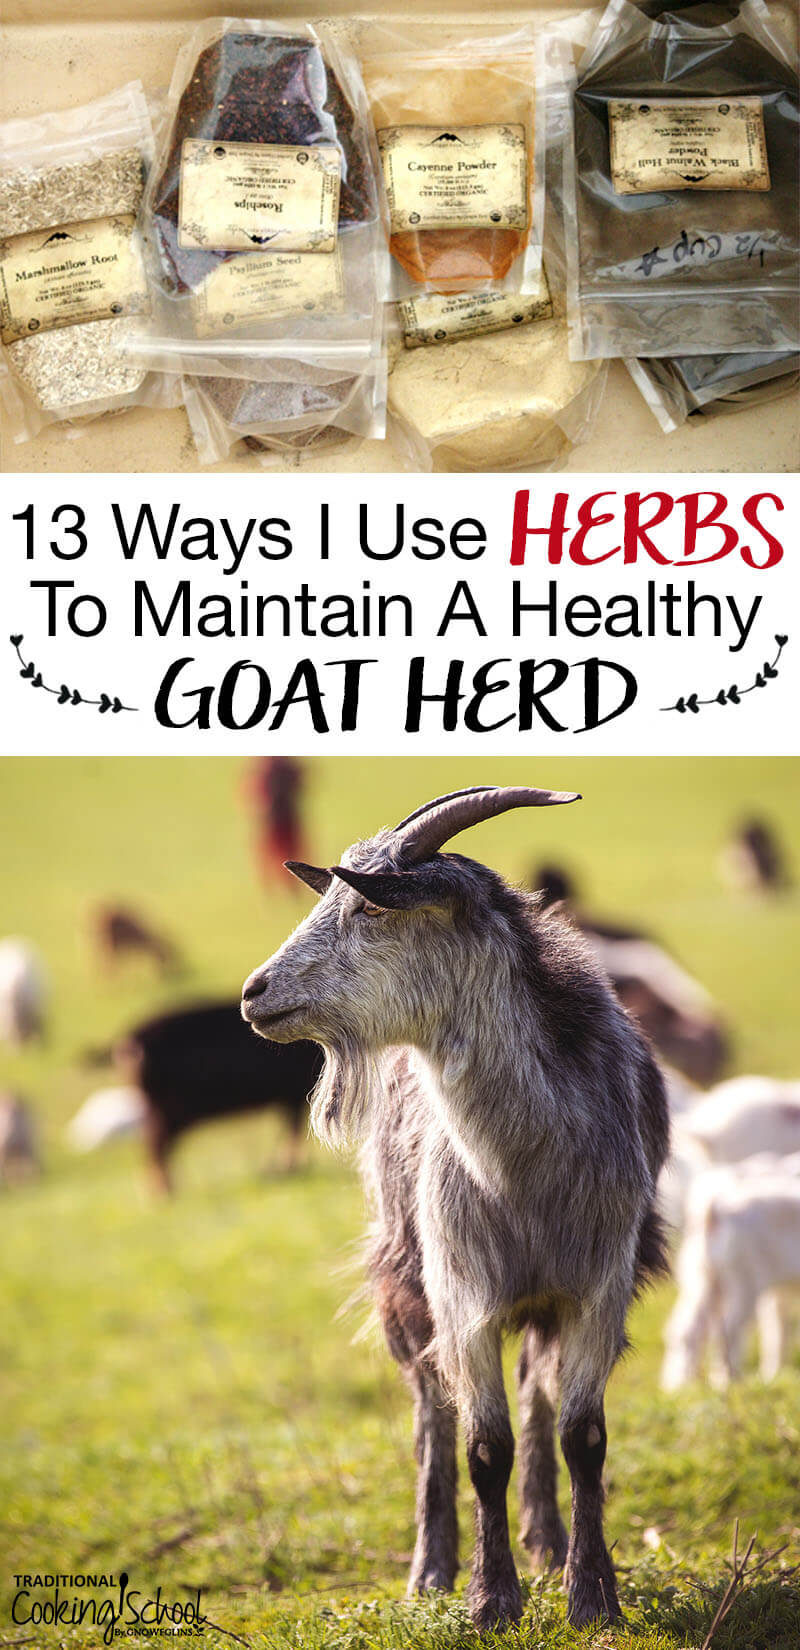 Image of a goat in a field and herbs in a bag on the table with text overlay